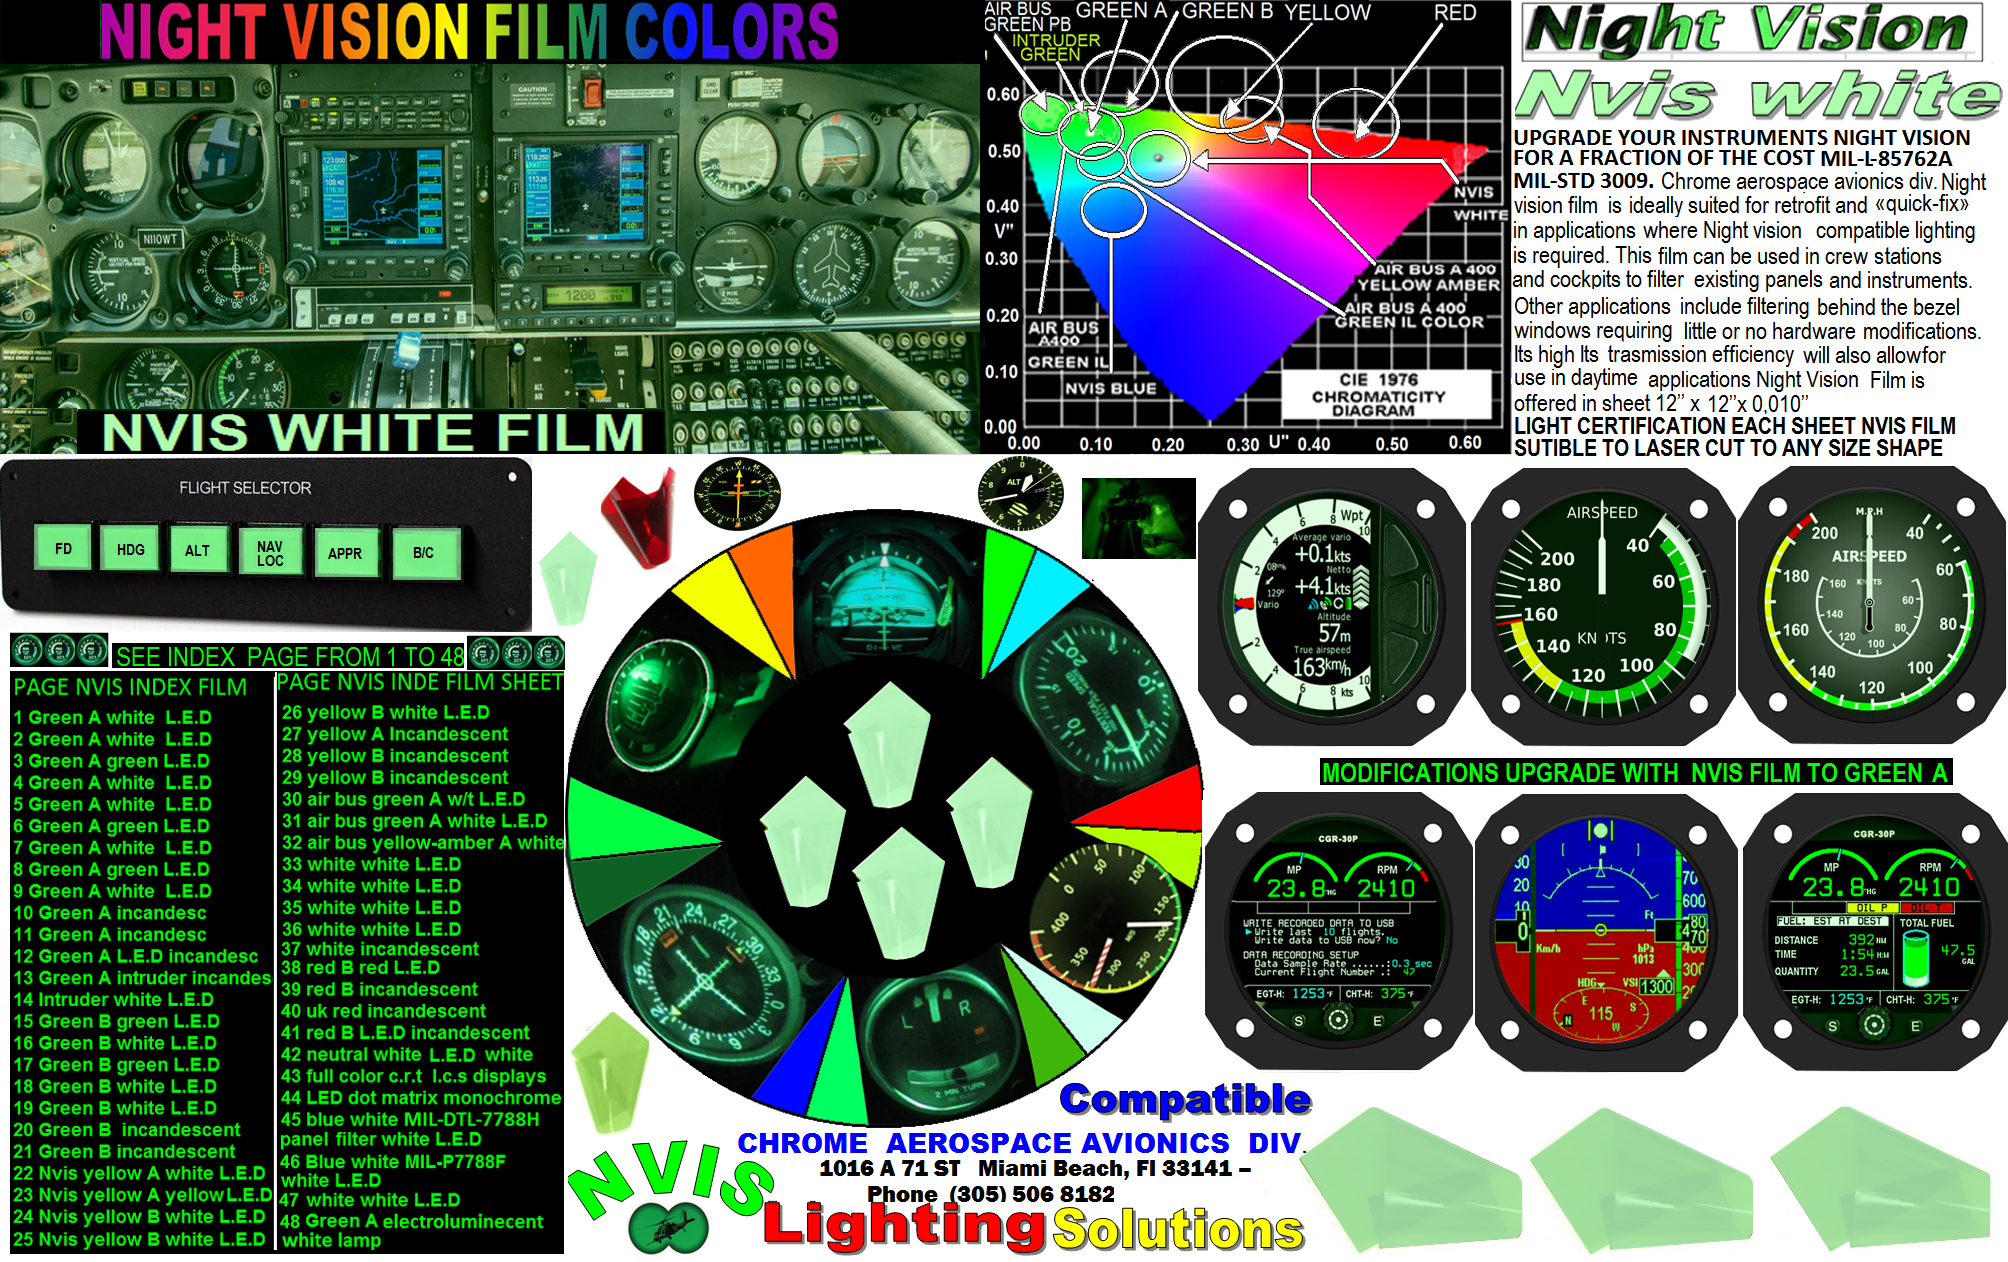 4 NVIS NVIS WHITE FILM UPGRADE CONVERSION INSTRUMENTS 330 SMD PLCC LED 955 SMD PLCC LED 955 SMD PLCC LED 955 LED 955 LED NVIS  955 LED HELICOPTERS NIGHT VISION LIGHTING   955 NVIS FILTER 955 Night Vision Imaging Systems (NVIS)  955 NVIS Aircraft Upgrades | Night Vision Goggles 955 PILOT NIGHT VISION NVIS ILLUMINATION  955 LED SWITCHES, KEYBOARDS, DIALS, AND DISPLAYS 955 COCKPIT MODIFICATION 955 NVIS compatible lights  955 NVIS filters . NVG lighting 955 NVG lighting control panel customized 955 SMD LED  955 NVIS compatible lights  955 NVIS compatible lights CHIP  955 SMD LED NVIS  955 SMD LED NIGHT VISION  955 SMD PLCC LED AVIONICS 955 AVIONICS NIGHT VISION LIGHTING 955 AVIONICS MODIFICATIONS TO NIGHT VISION   955 LED AVIONICS UPGRADES TO NVIS 955 LED NVIS GREEN A 955 IMPACT SOLAR FILTER NVIS 955 LED NVIS GREEN B 955 LED NVIS WHITE  955 LED NVIS RED  955 LED AIRBUS A 400 GREEN  955-001 SMD PLCC LED 955-001 LED   955-001 LED NVIS  955-001 LED HELICOPTERS NIGHT VISION LIGHTING 955-001 NVIS FILTER 955-001 Night Vision Imaging Systems (NVIS) 955-001 PILOT NIGHT VISION NVIS ILLUMINATION  955-001 NVIS Aircraft Upgrades | Night Vision Goggles  955-001 LED SWITCHES, KEYBOARDS, DIALS, AND DISPLAYS 955-001 COCKPIT MODIFICATION  955-001 NVIS compatible lights    955-001 NVIS filters . NVG lighting  955-001 NVG lighting control panel customized   955-001 SMD LED 955-001 NVIS compatible lights  955-001 NVIS compatible lights CHIP 955-001 SMD LED NVIS 955-001 SMD LED NIGHT VISION 955-001 SMD PLCC LED AVIONICS 955-001 AVIONICS NIGHT VISION LIGHTING 955-001 AVIONICS MODIFICATIONS TO NIGHT VISION 955-001 LED AVIONICS UPGRADES TO NVIS 955-001 LED NVIS GREEN A 955-001 IMPACT SOLAR FILTER NVIS 955-001 LED NVIS GREEN B 955-001 LED NVIS WHITE 955-001 LED NVIS RED 955-001 LED AIRBUS A 400 GREEN  670 SMD LED  670 NVG lighting control panel customized  670 NVIS filters . NVG lighting